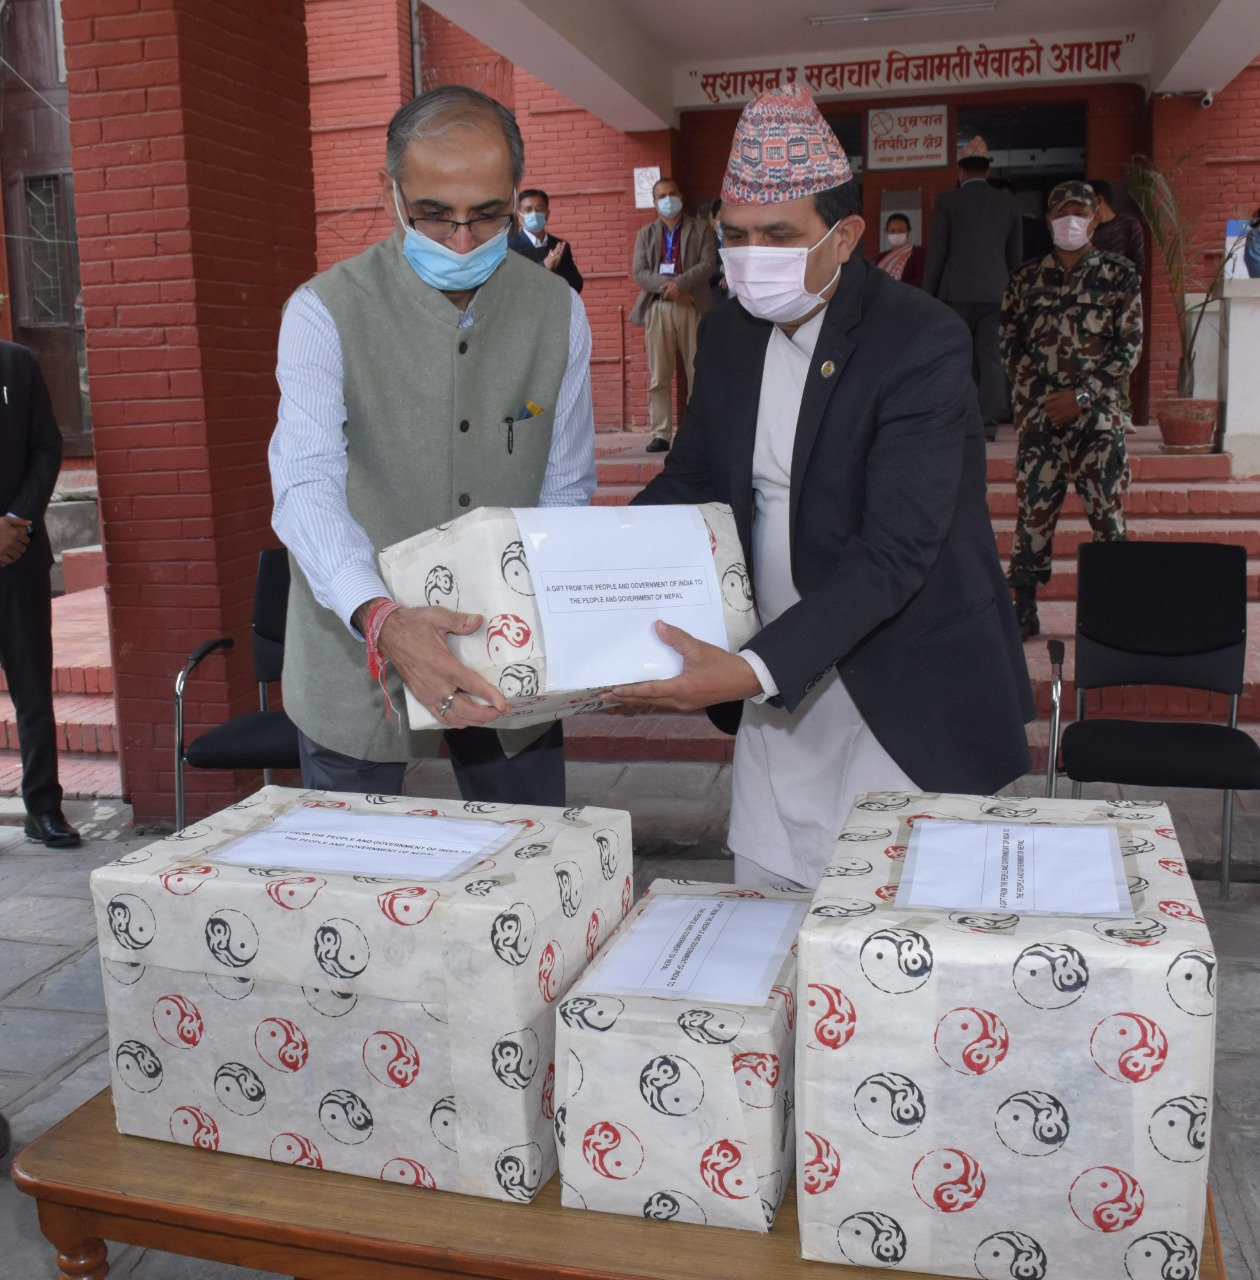 Ambassador of India to Nepal Vinay Mohan Kwatra, on behalf of the Indian government, handing over essential medicines to the Minister for Health and Population Bhanubhakta Dhakal, at the Ministry, in Kathmandu, on Wednesday, April 22, 2020. Photo: Twitter/Embassy of India in Nepal